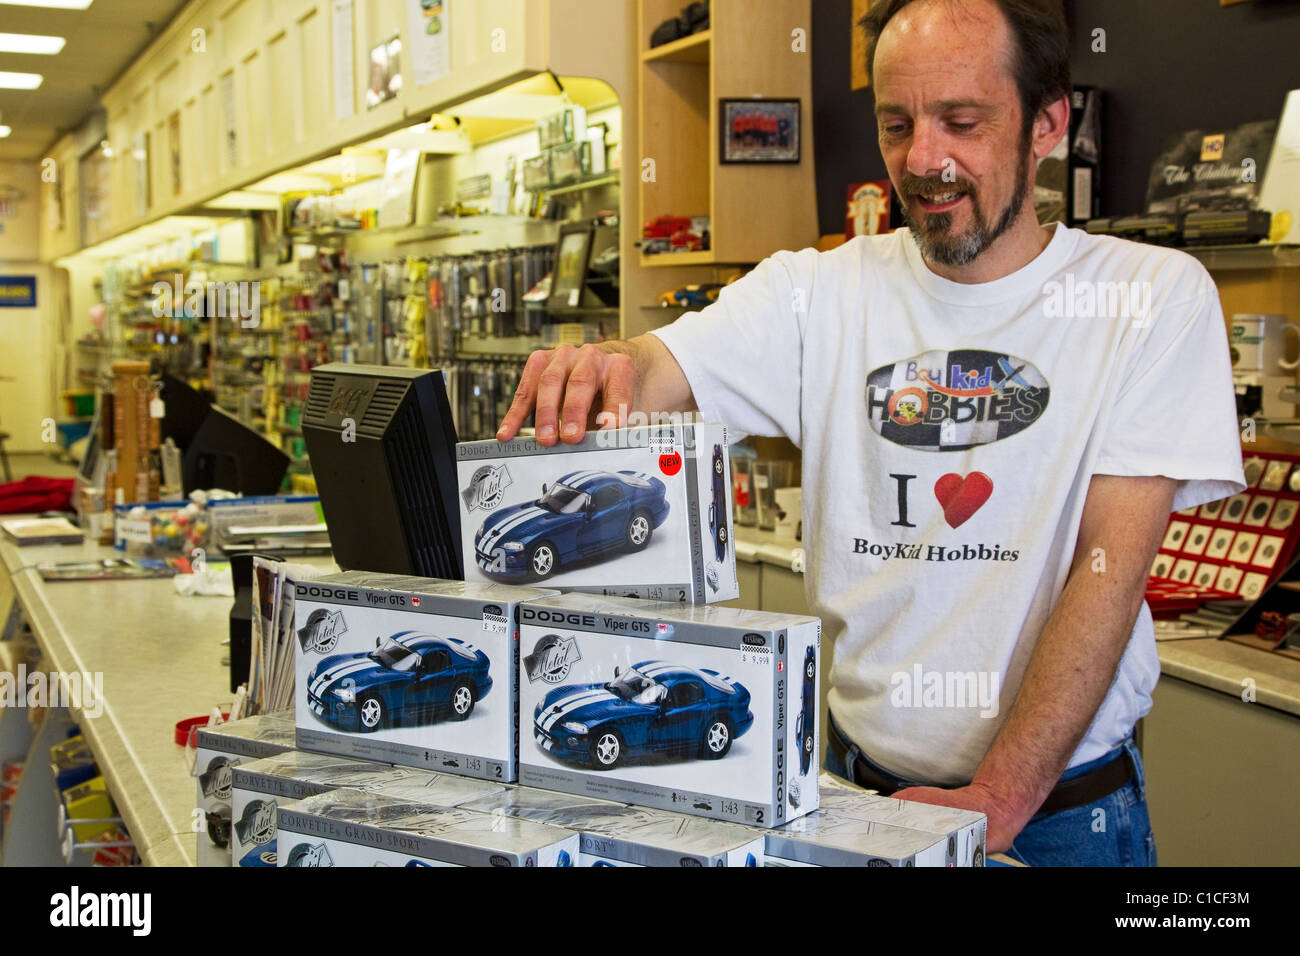 Hobby shop store with retail employee displaying model cars - Stock Image